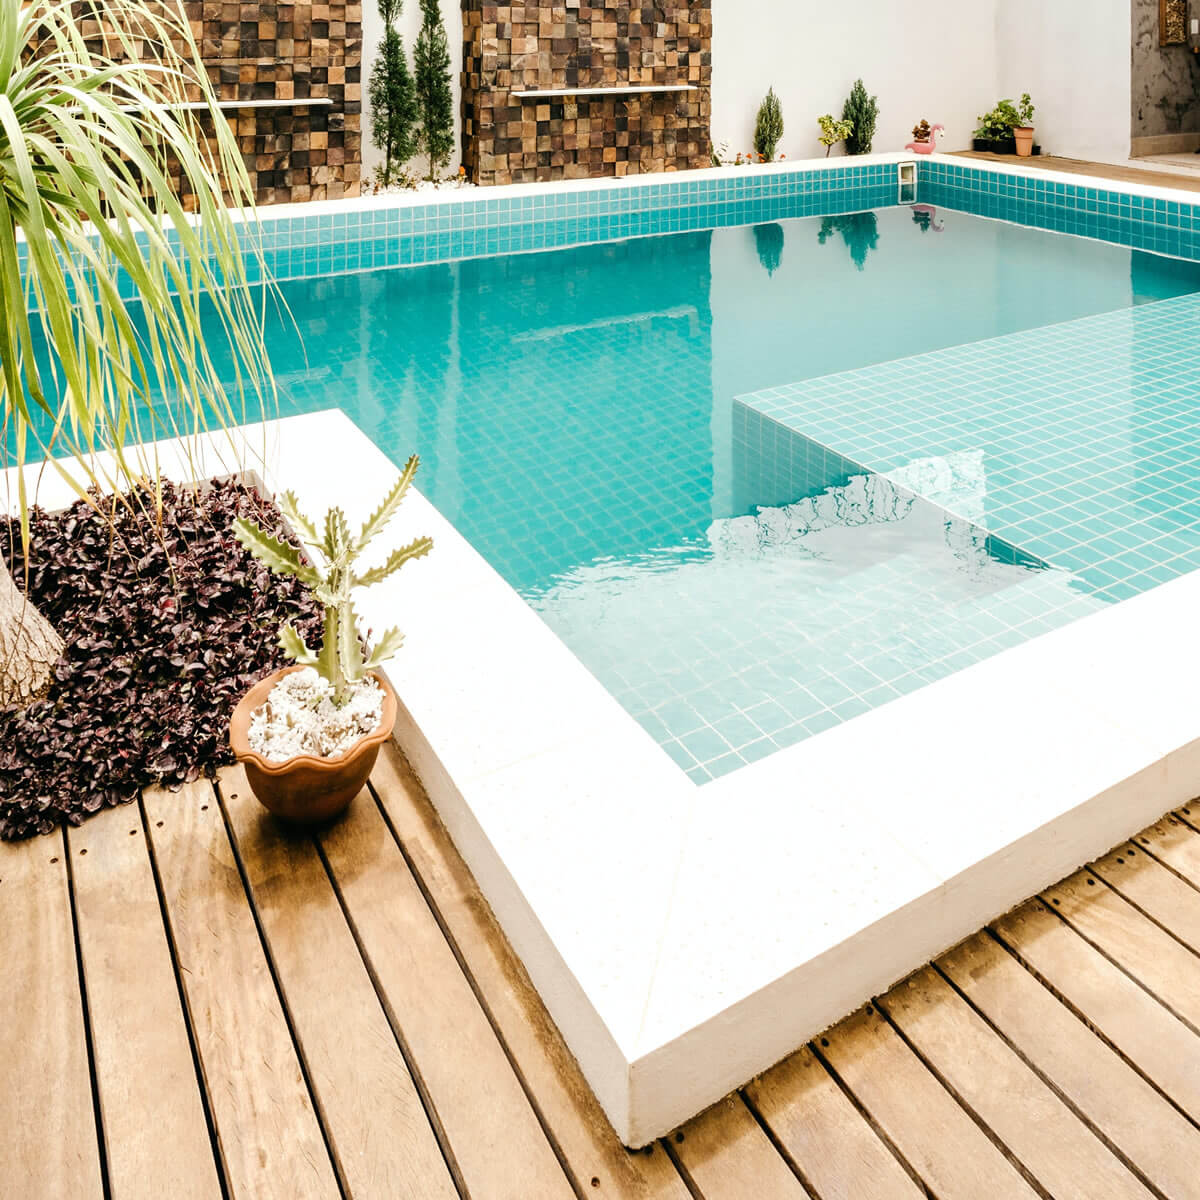 swimming pool and cactus on deck